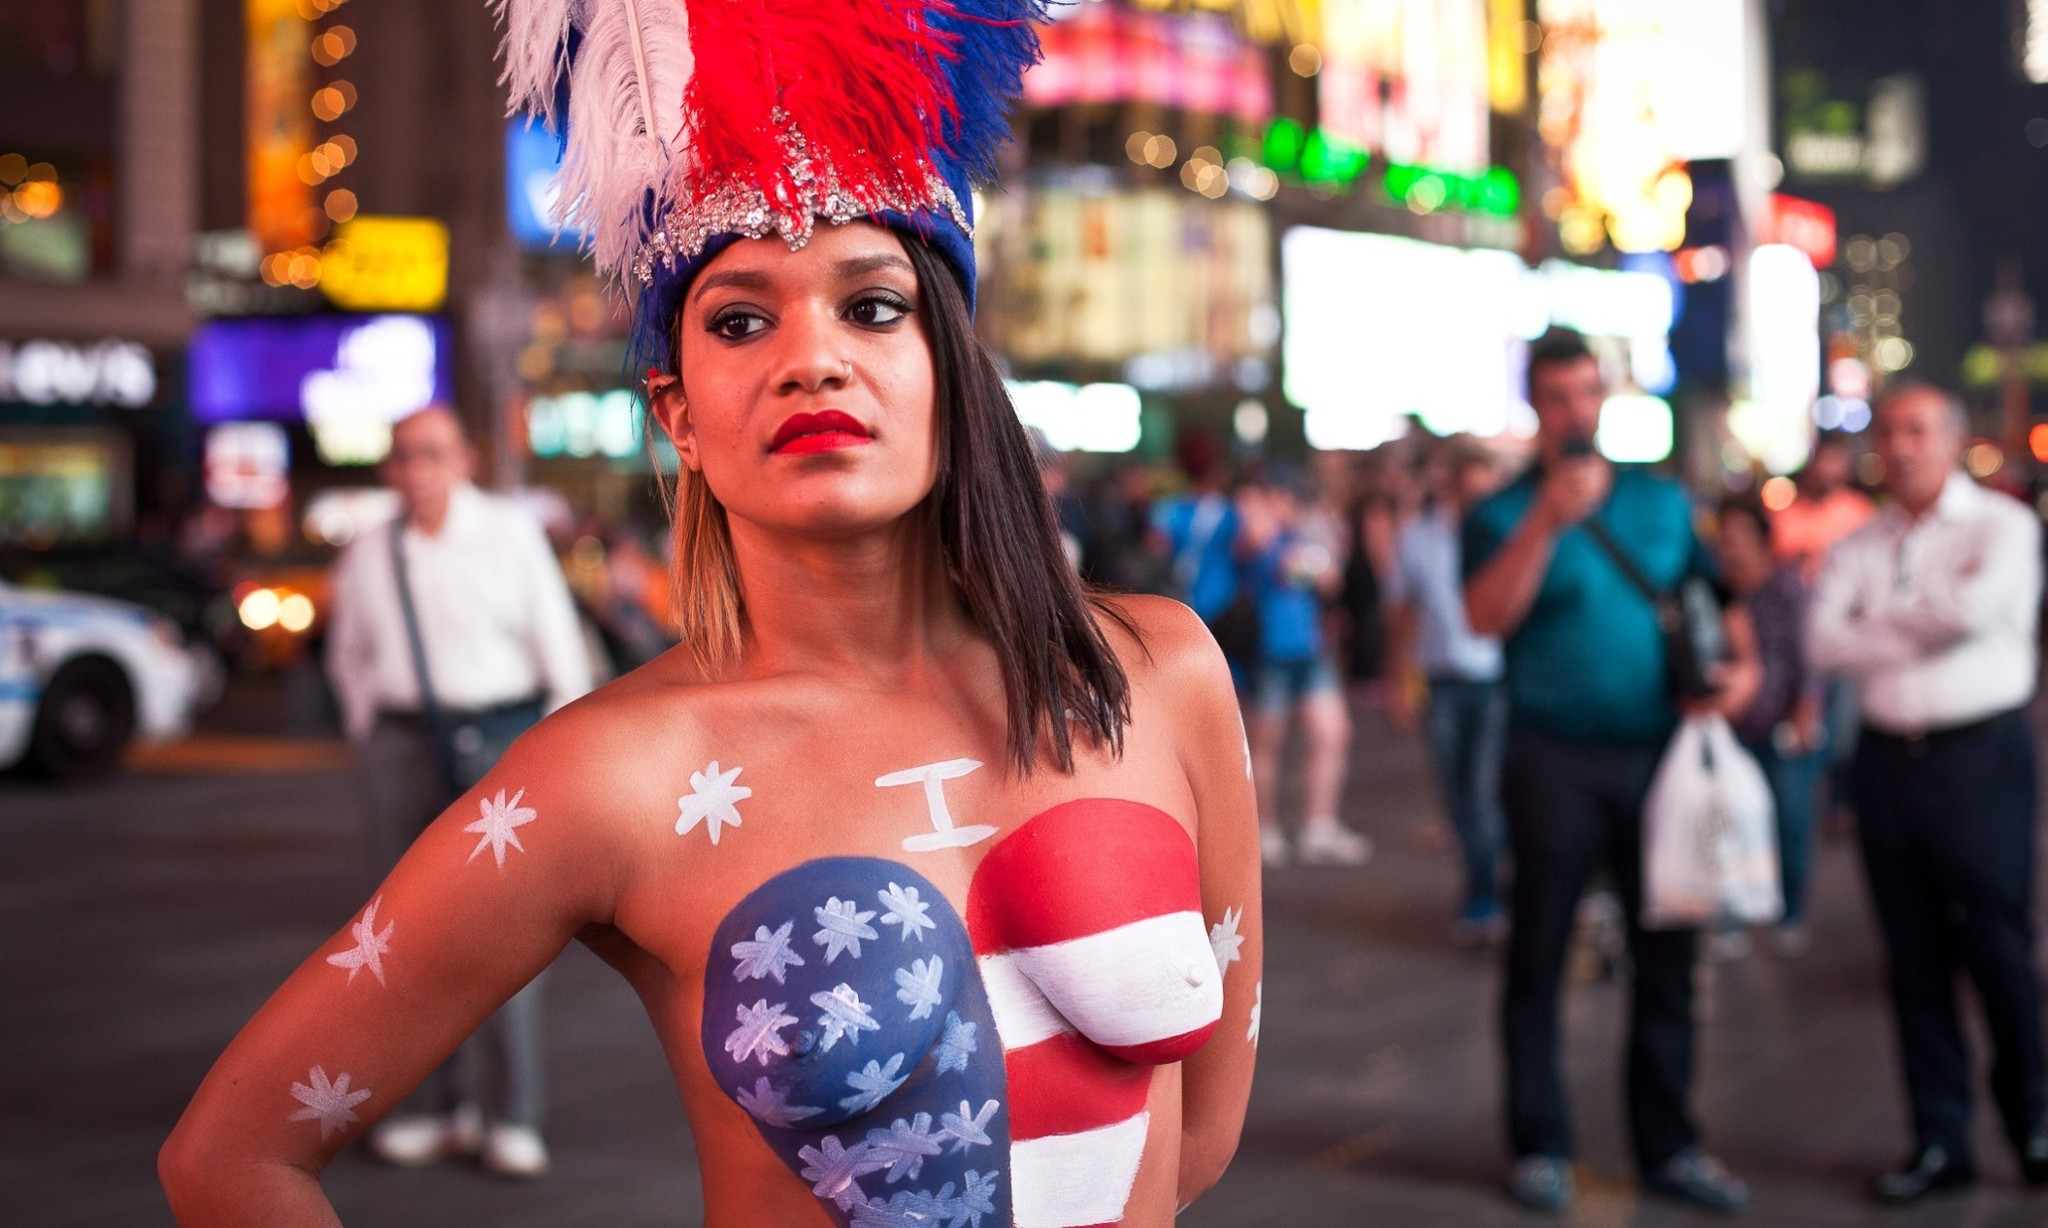 A day with Saira, one of the original topless painted ladies of New York City